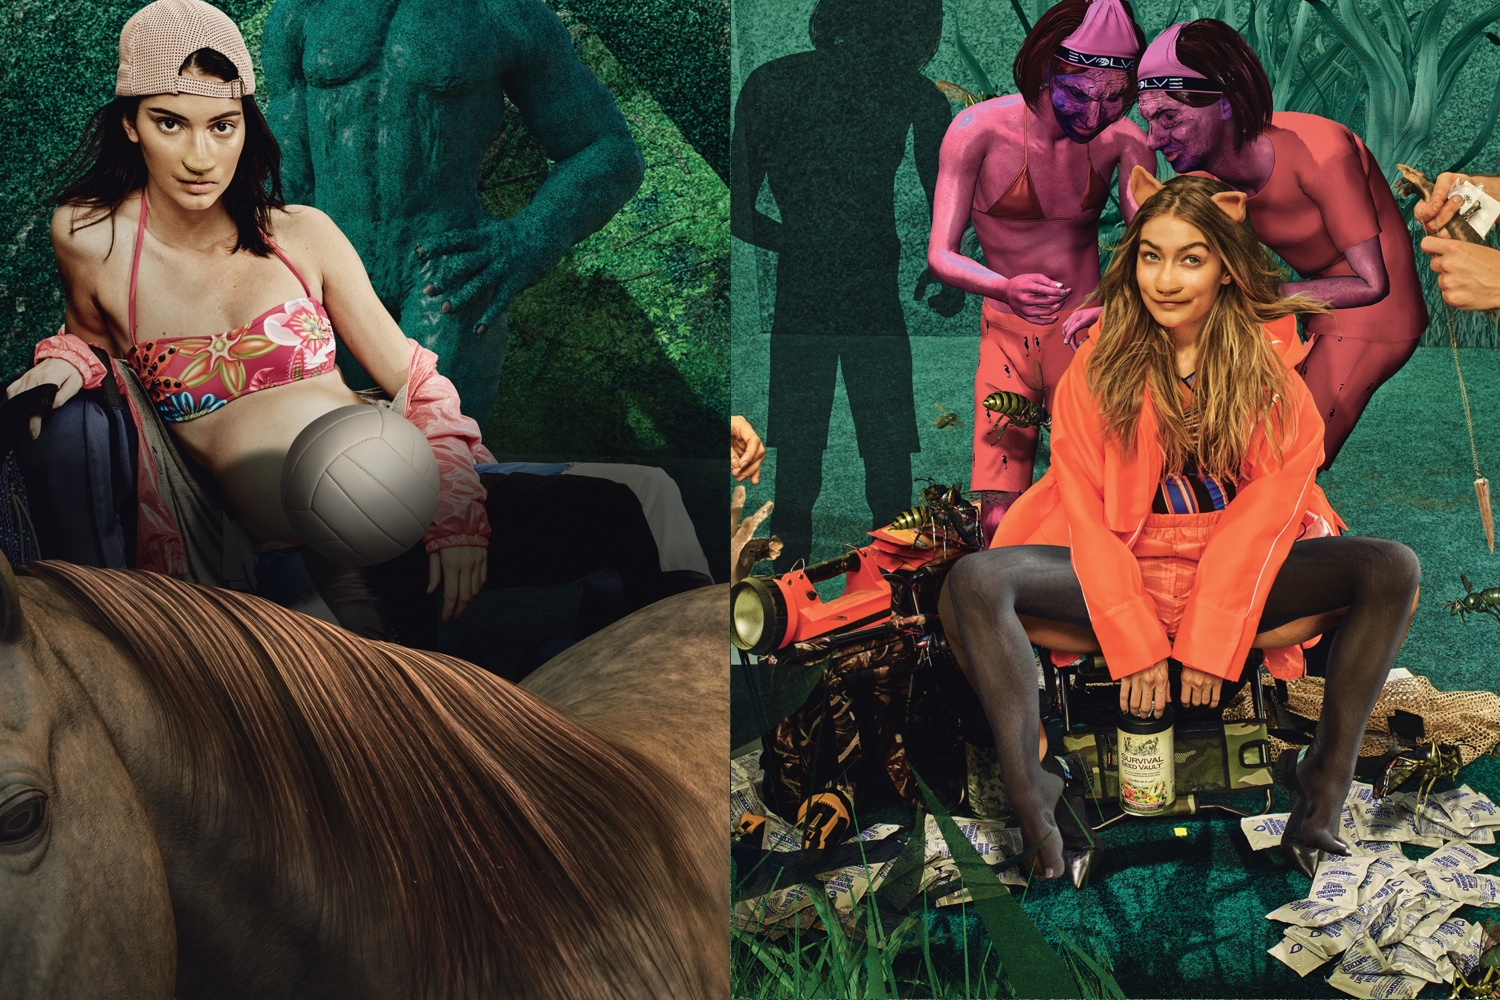 W Magazine 10th anniversary art issue by Lizzie Fitch and Ryan Trecartin, starring Kendall Jenner and Gigi Hadid